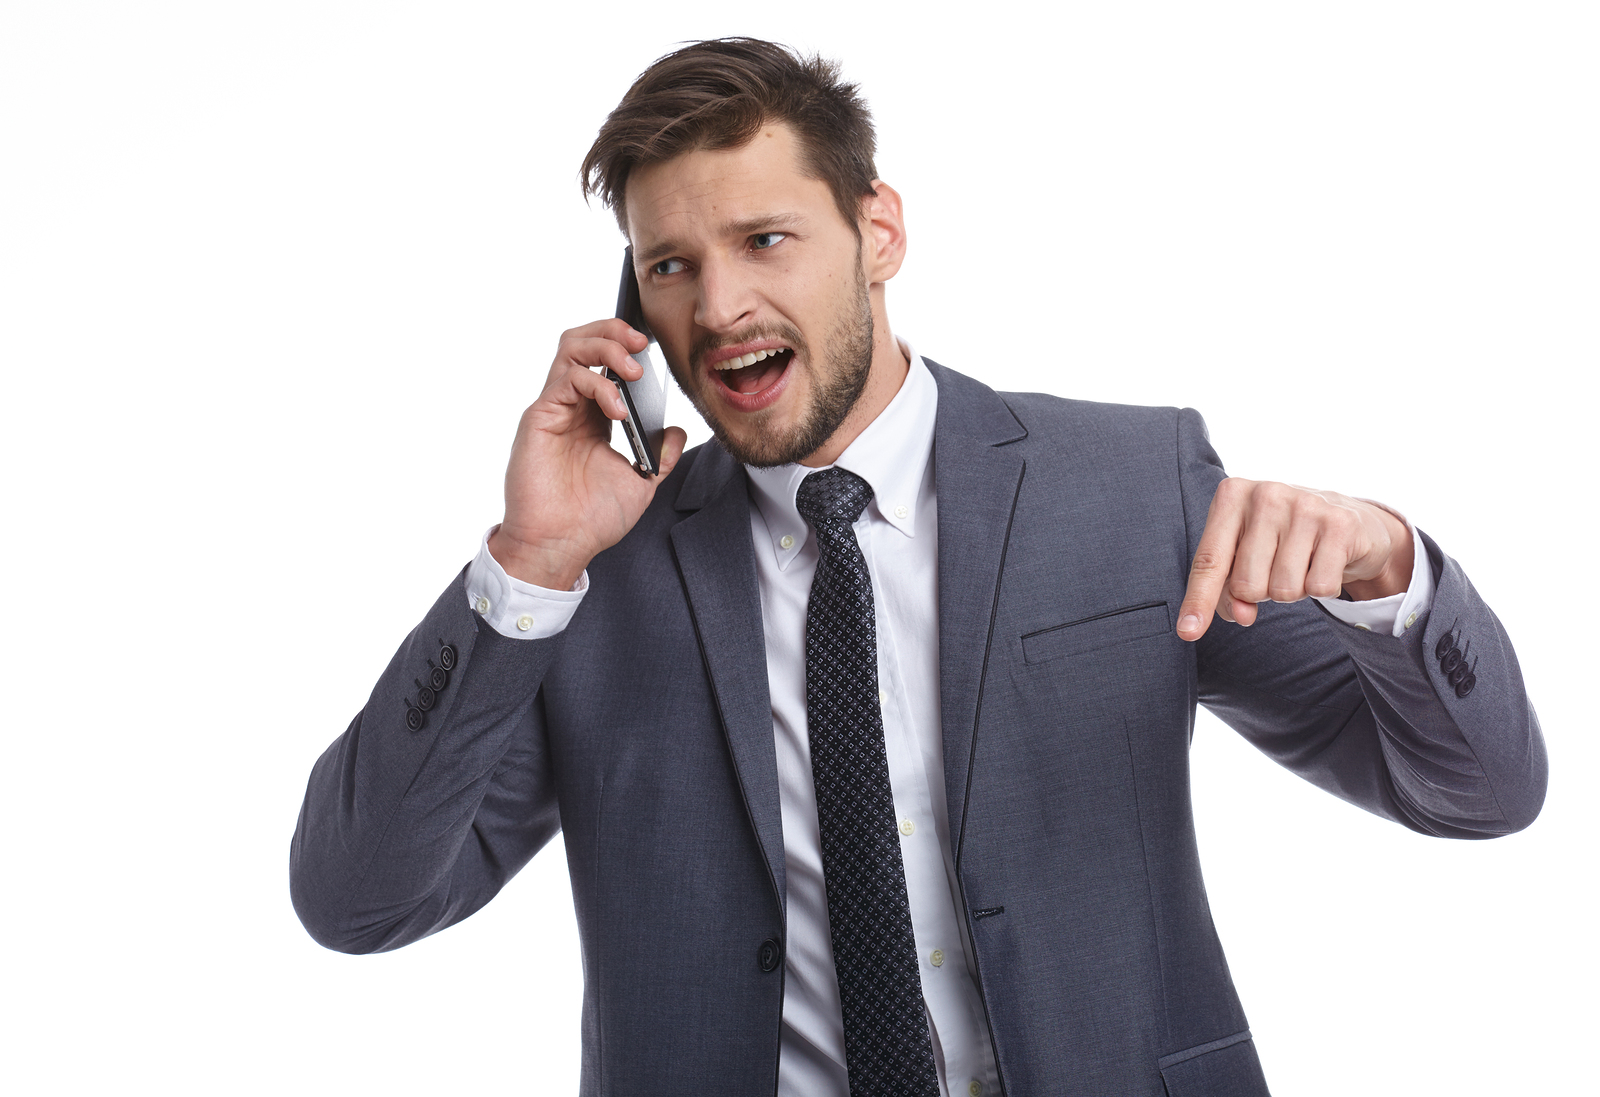 Emotional young man is talking on the phone. The human face, exp